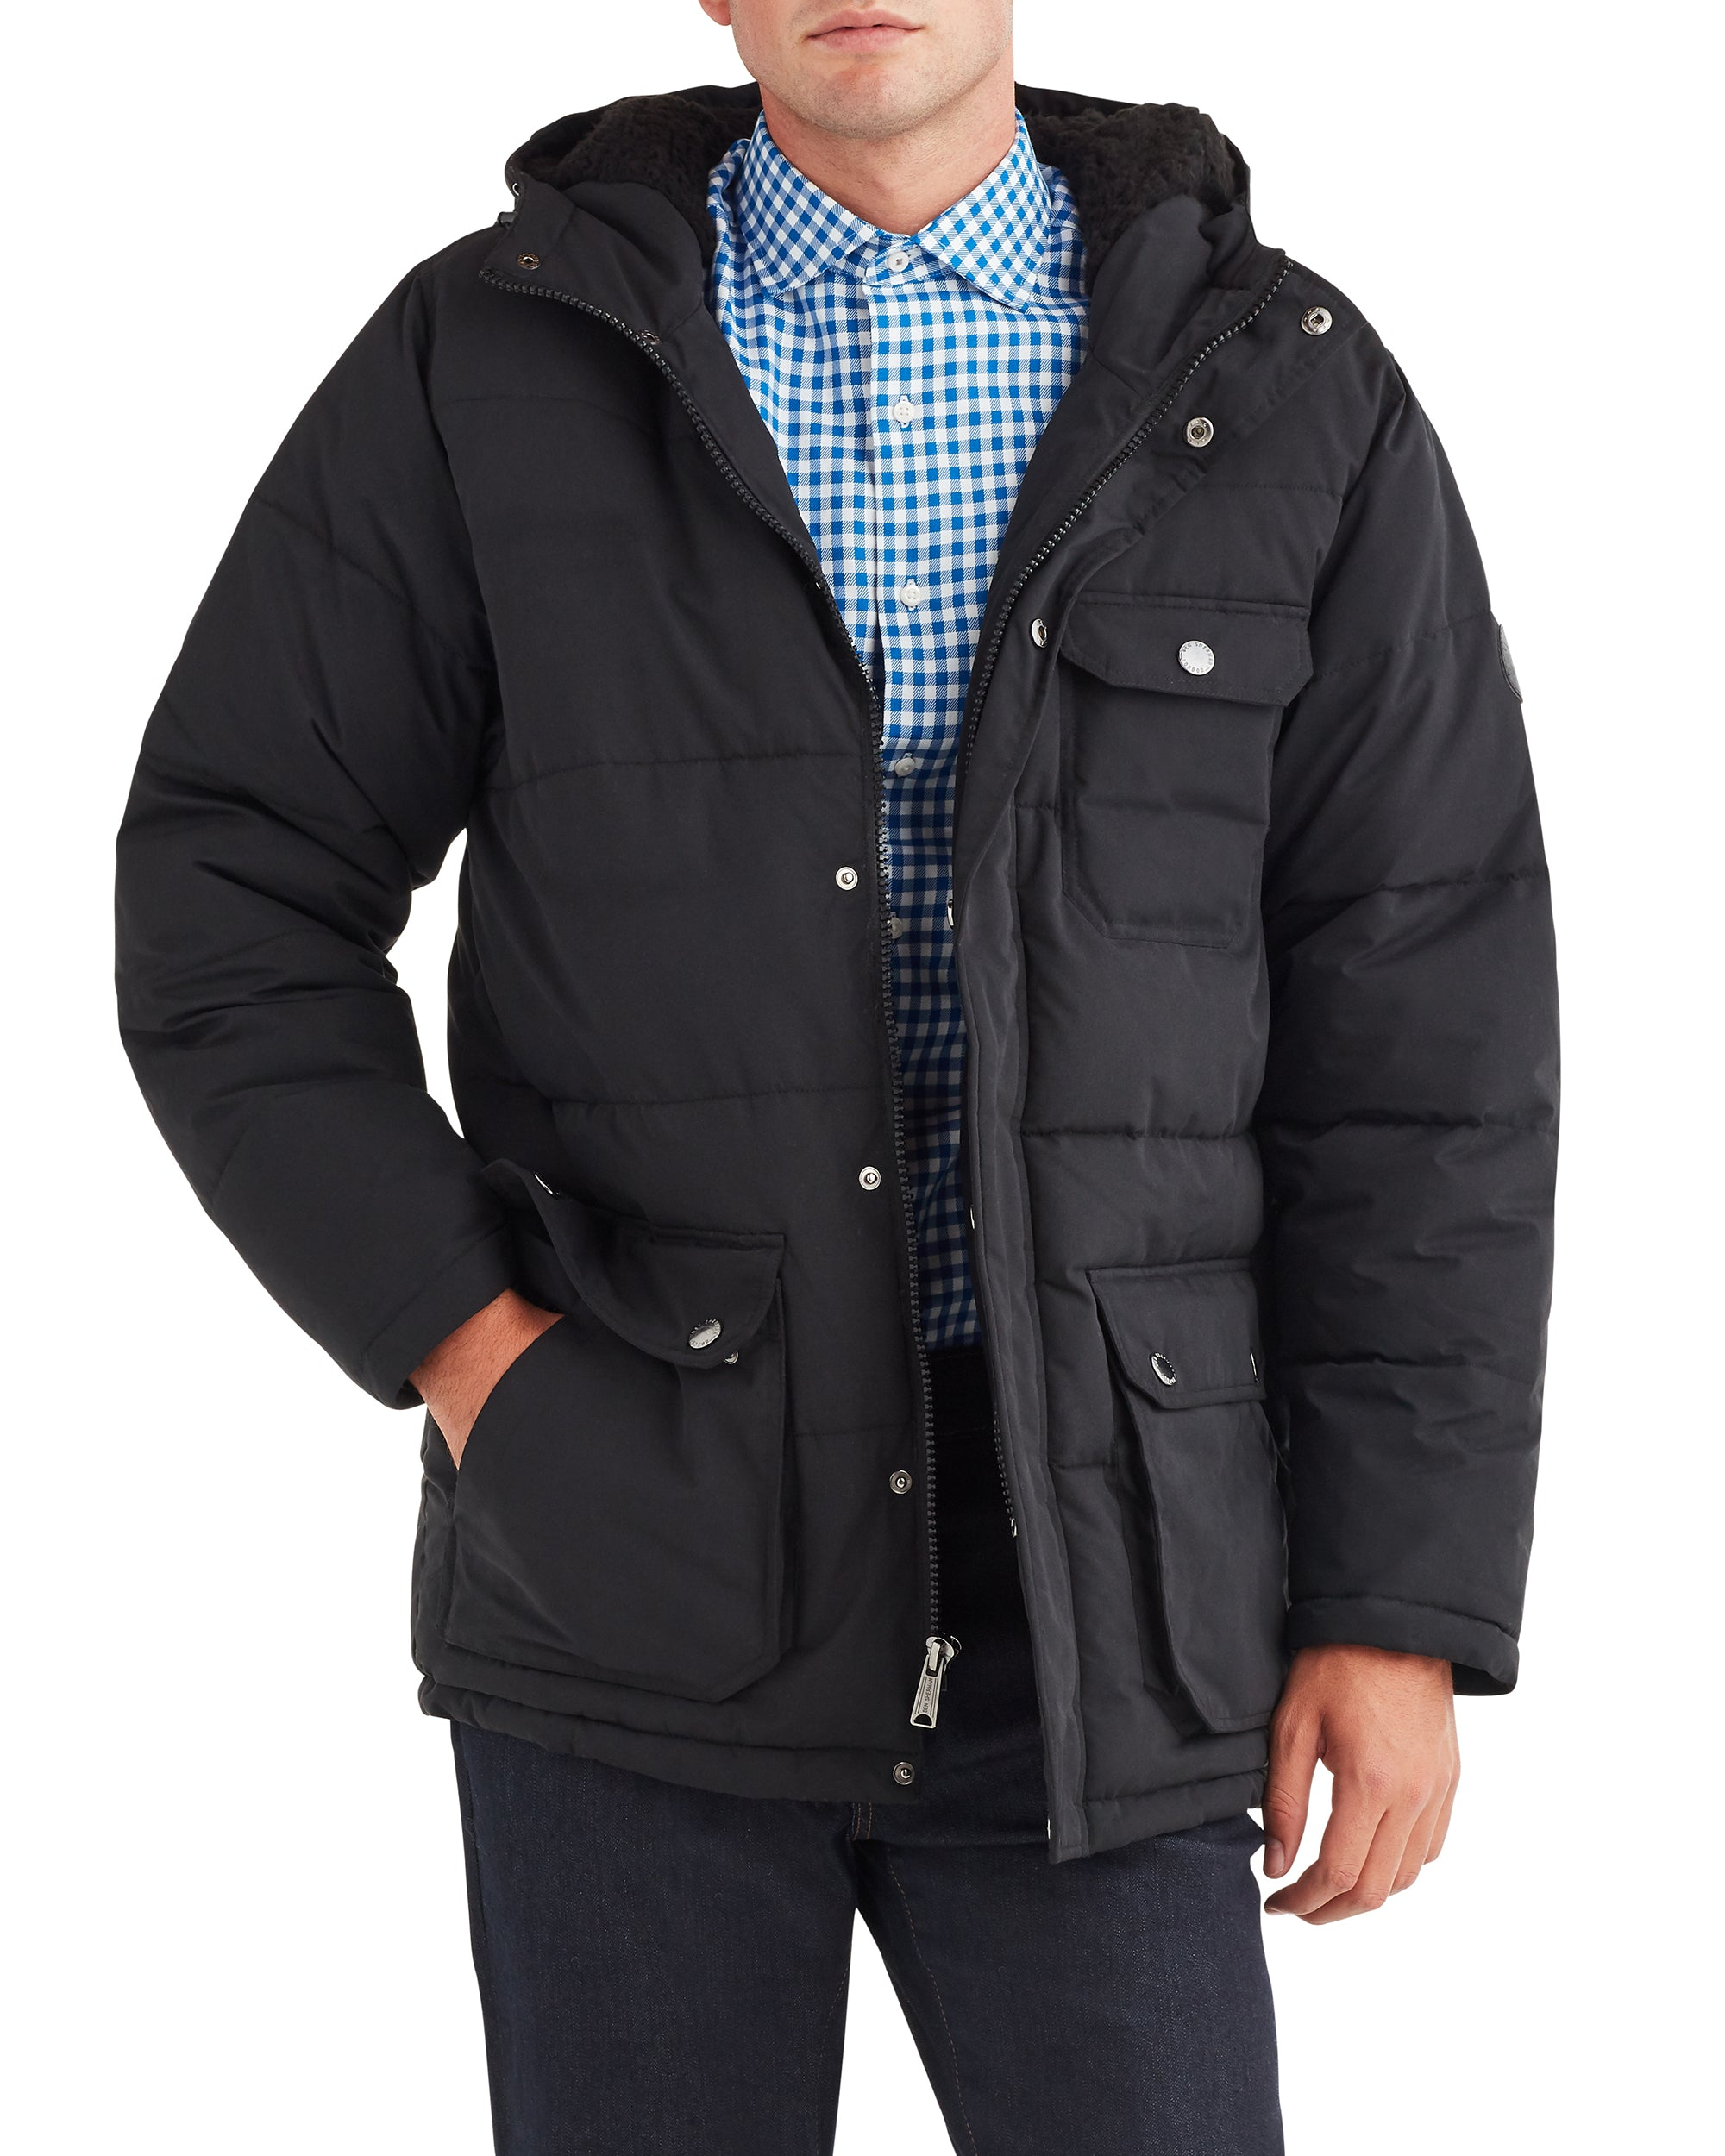 Men's Puffer Jacket with Sherpa-Lined Hood - Black